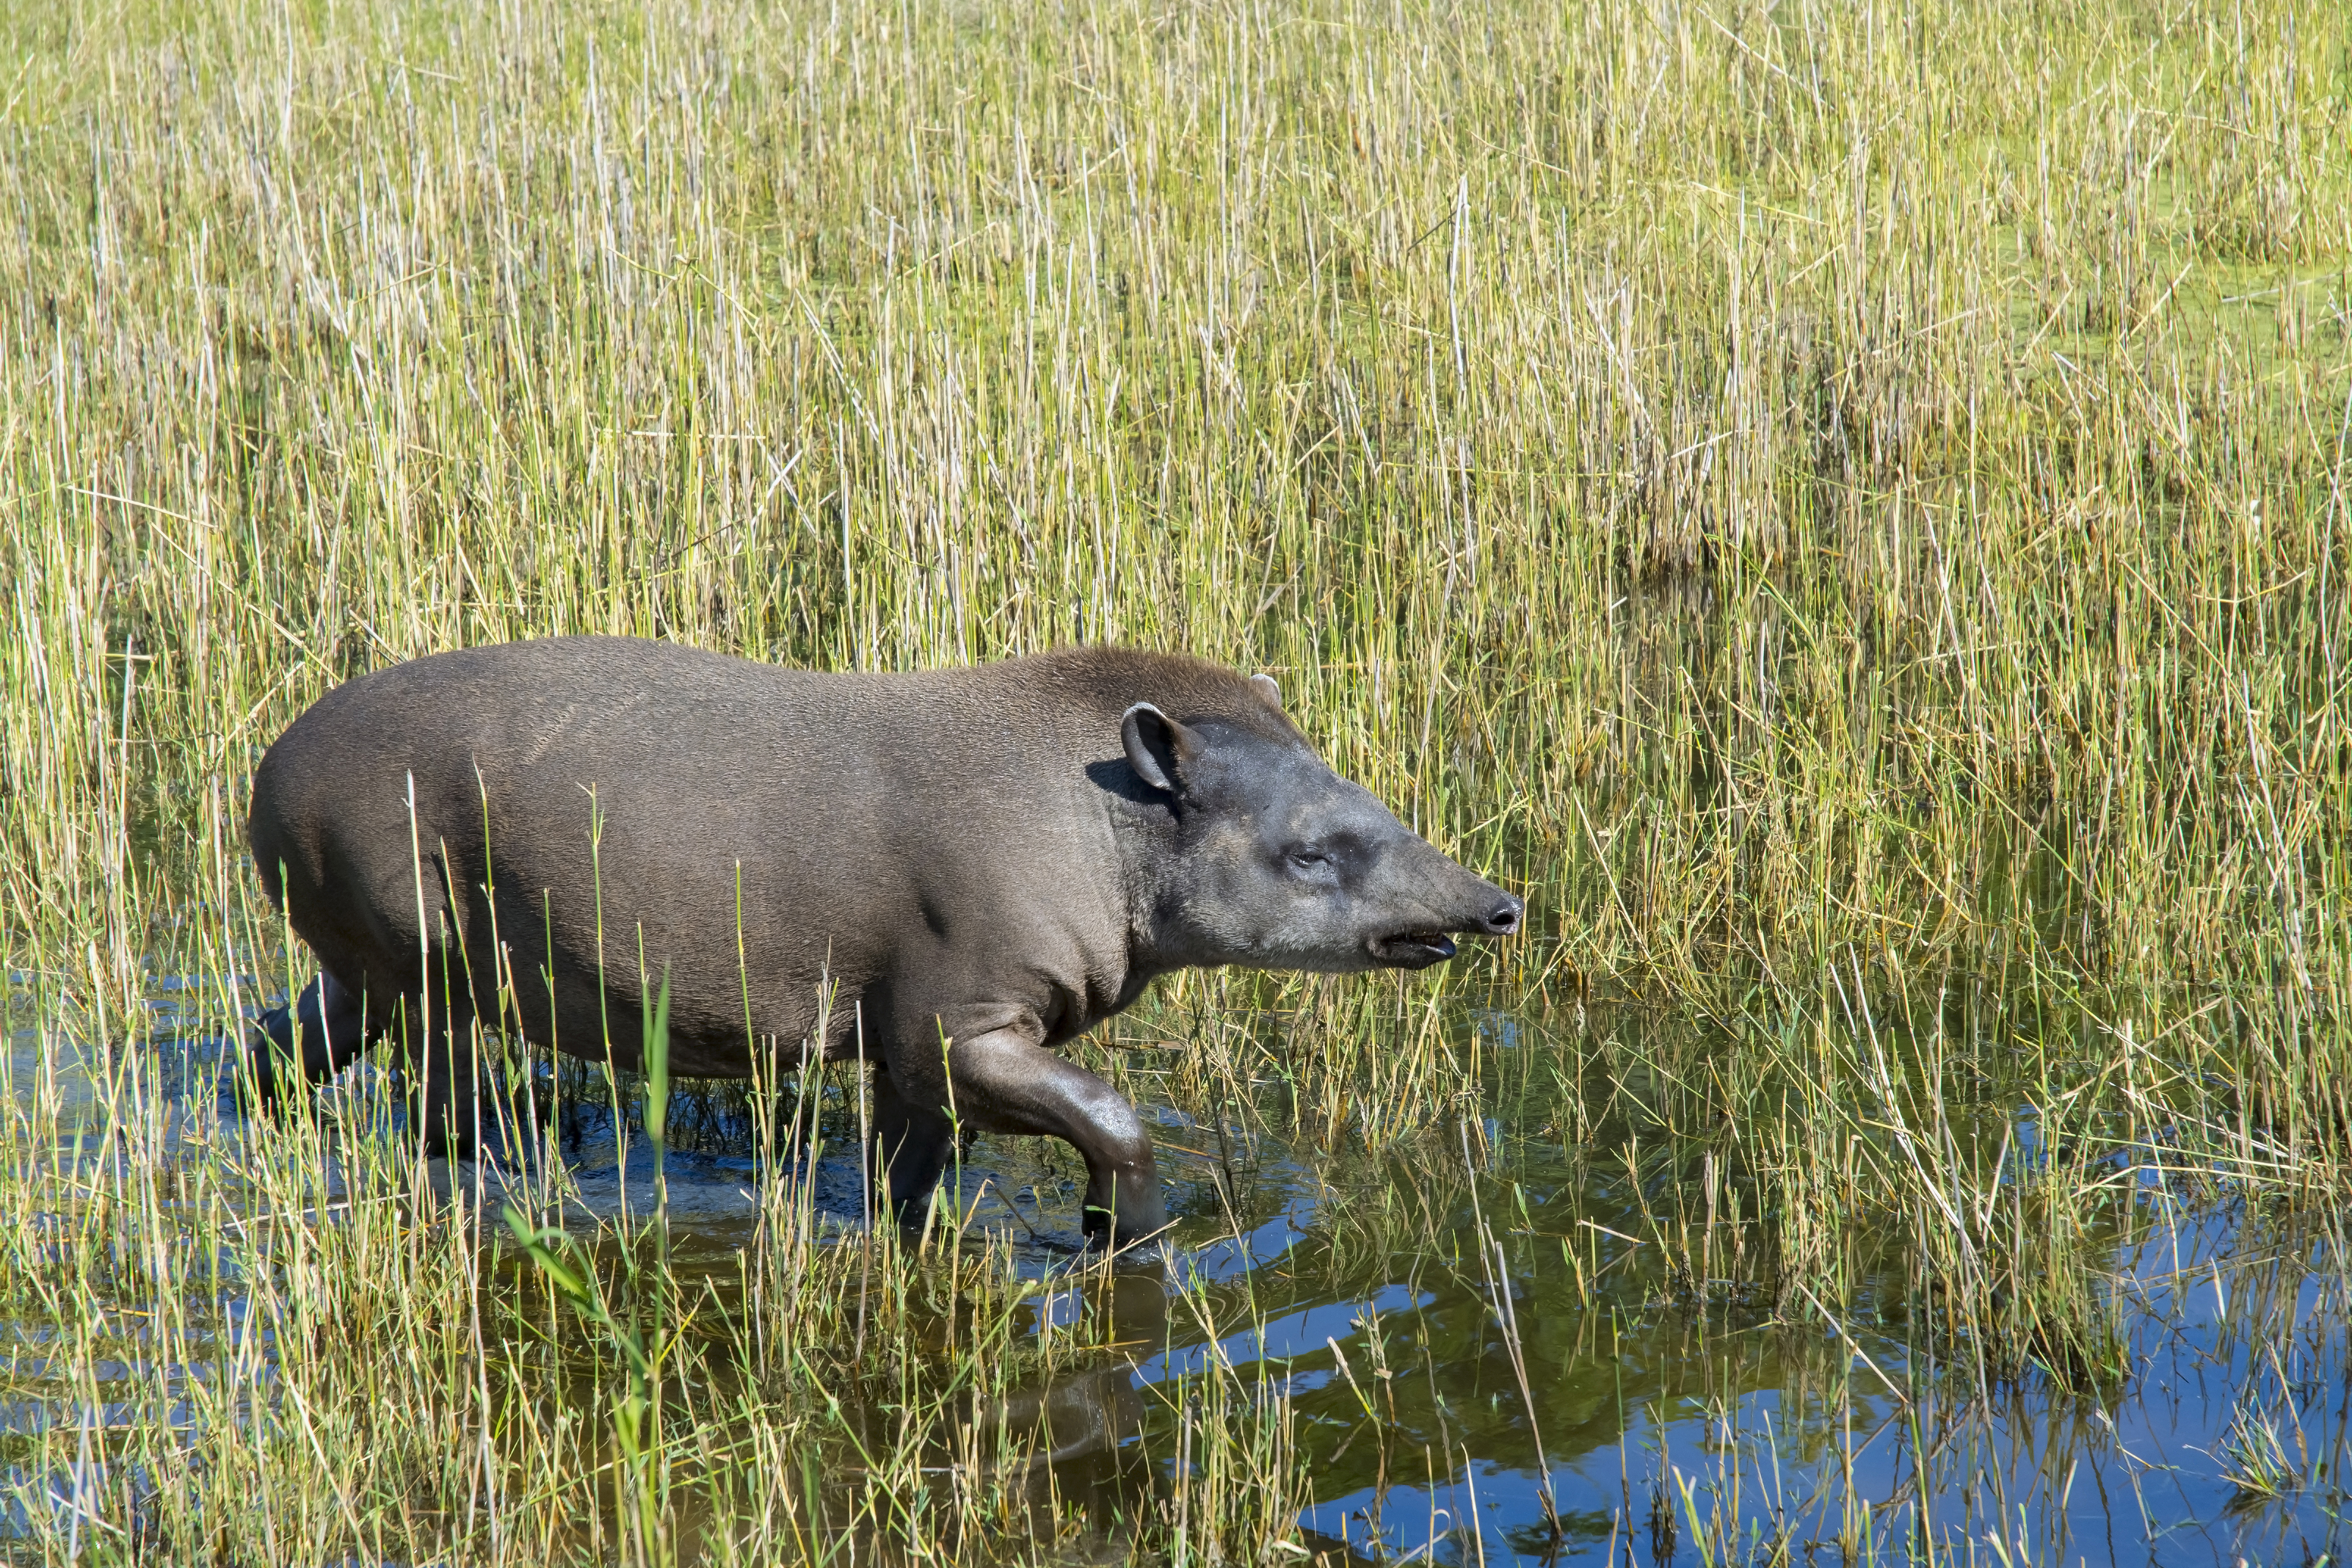 Lowland Tapir in the wild.